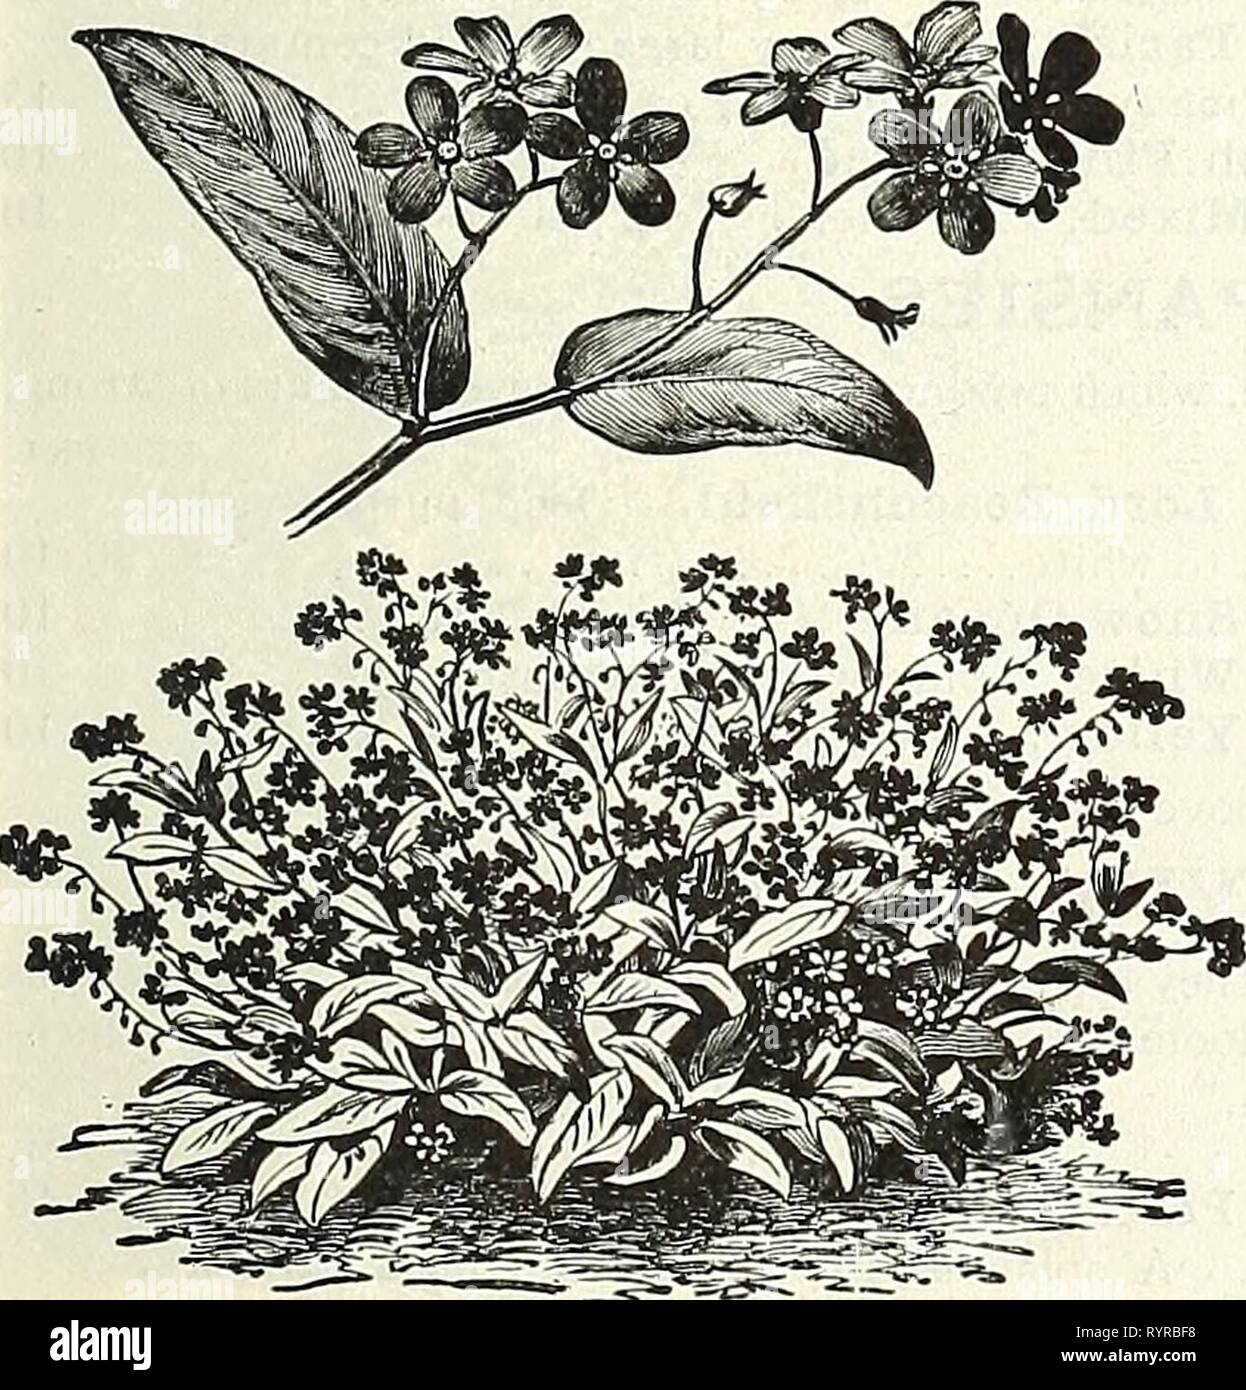 Dreer's midsummer list 1927 (1927) Dreer's midsummer list 1927 . dreersmidsummerl1927henr Year: 1927  io vjiai Physalis Francheti (Chinese Lantern Plant) IVflllSa Ensete (Abyssinian Banana) 3221 A splendid plant for the open air in the summer, producing a most striking effect when planted singly or in groups. In our hot summer it luxuriates and attains gigantic proportions when freely supplied with manure and water. The seeds germinate easily if started in hotbed. Tender perennial; 10 to 20 feet. 15 cts. per pkt. of 5 seeds; 25 seeds for 50 cts. Nemesia PER PKT. Dwarf Large-flowering Hybrids.  - Stock Image